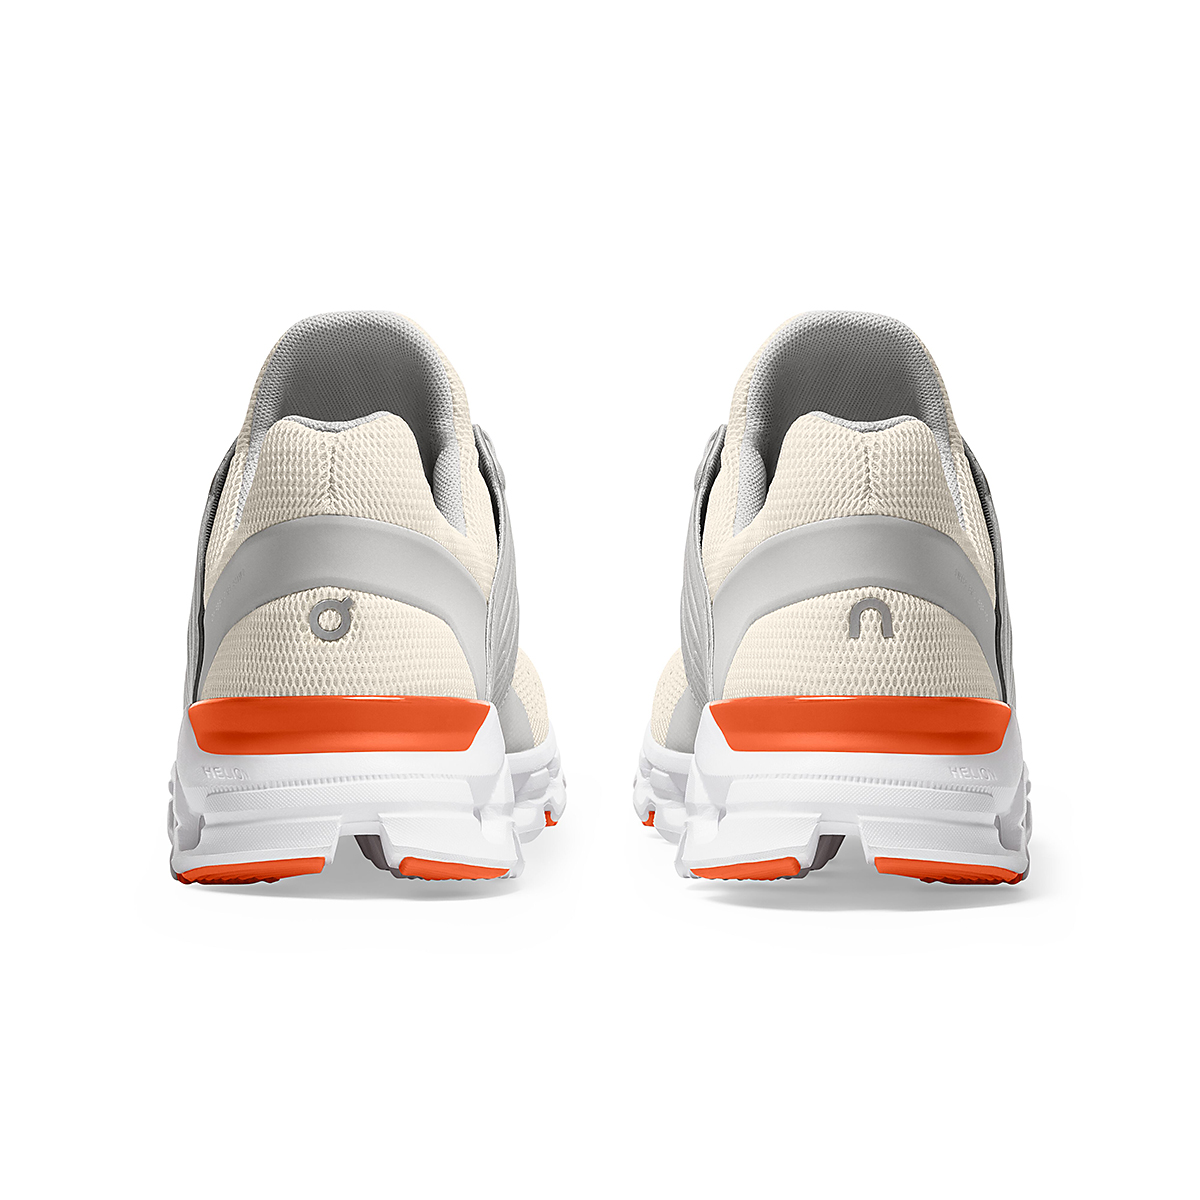 Men's On Cloudswift 2.0 Running Shoe - Color: White | Flame - Size: 7 - Width: Regular, White | Flame, large, image 4